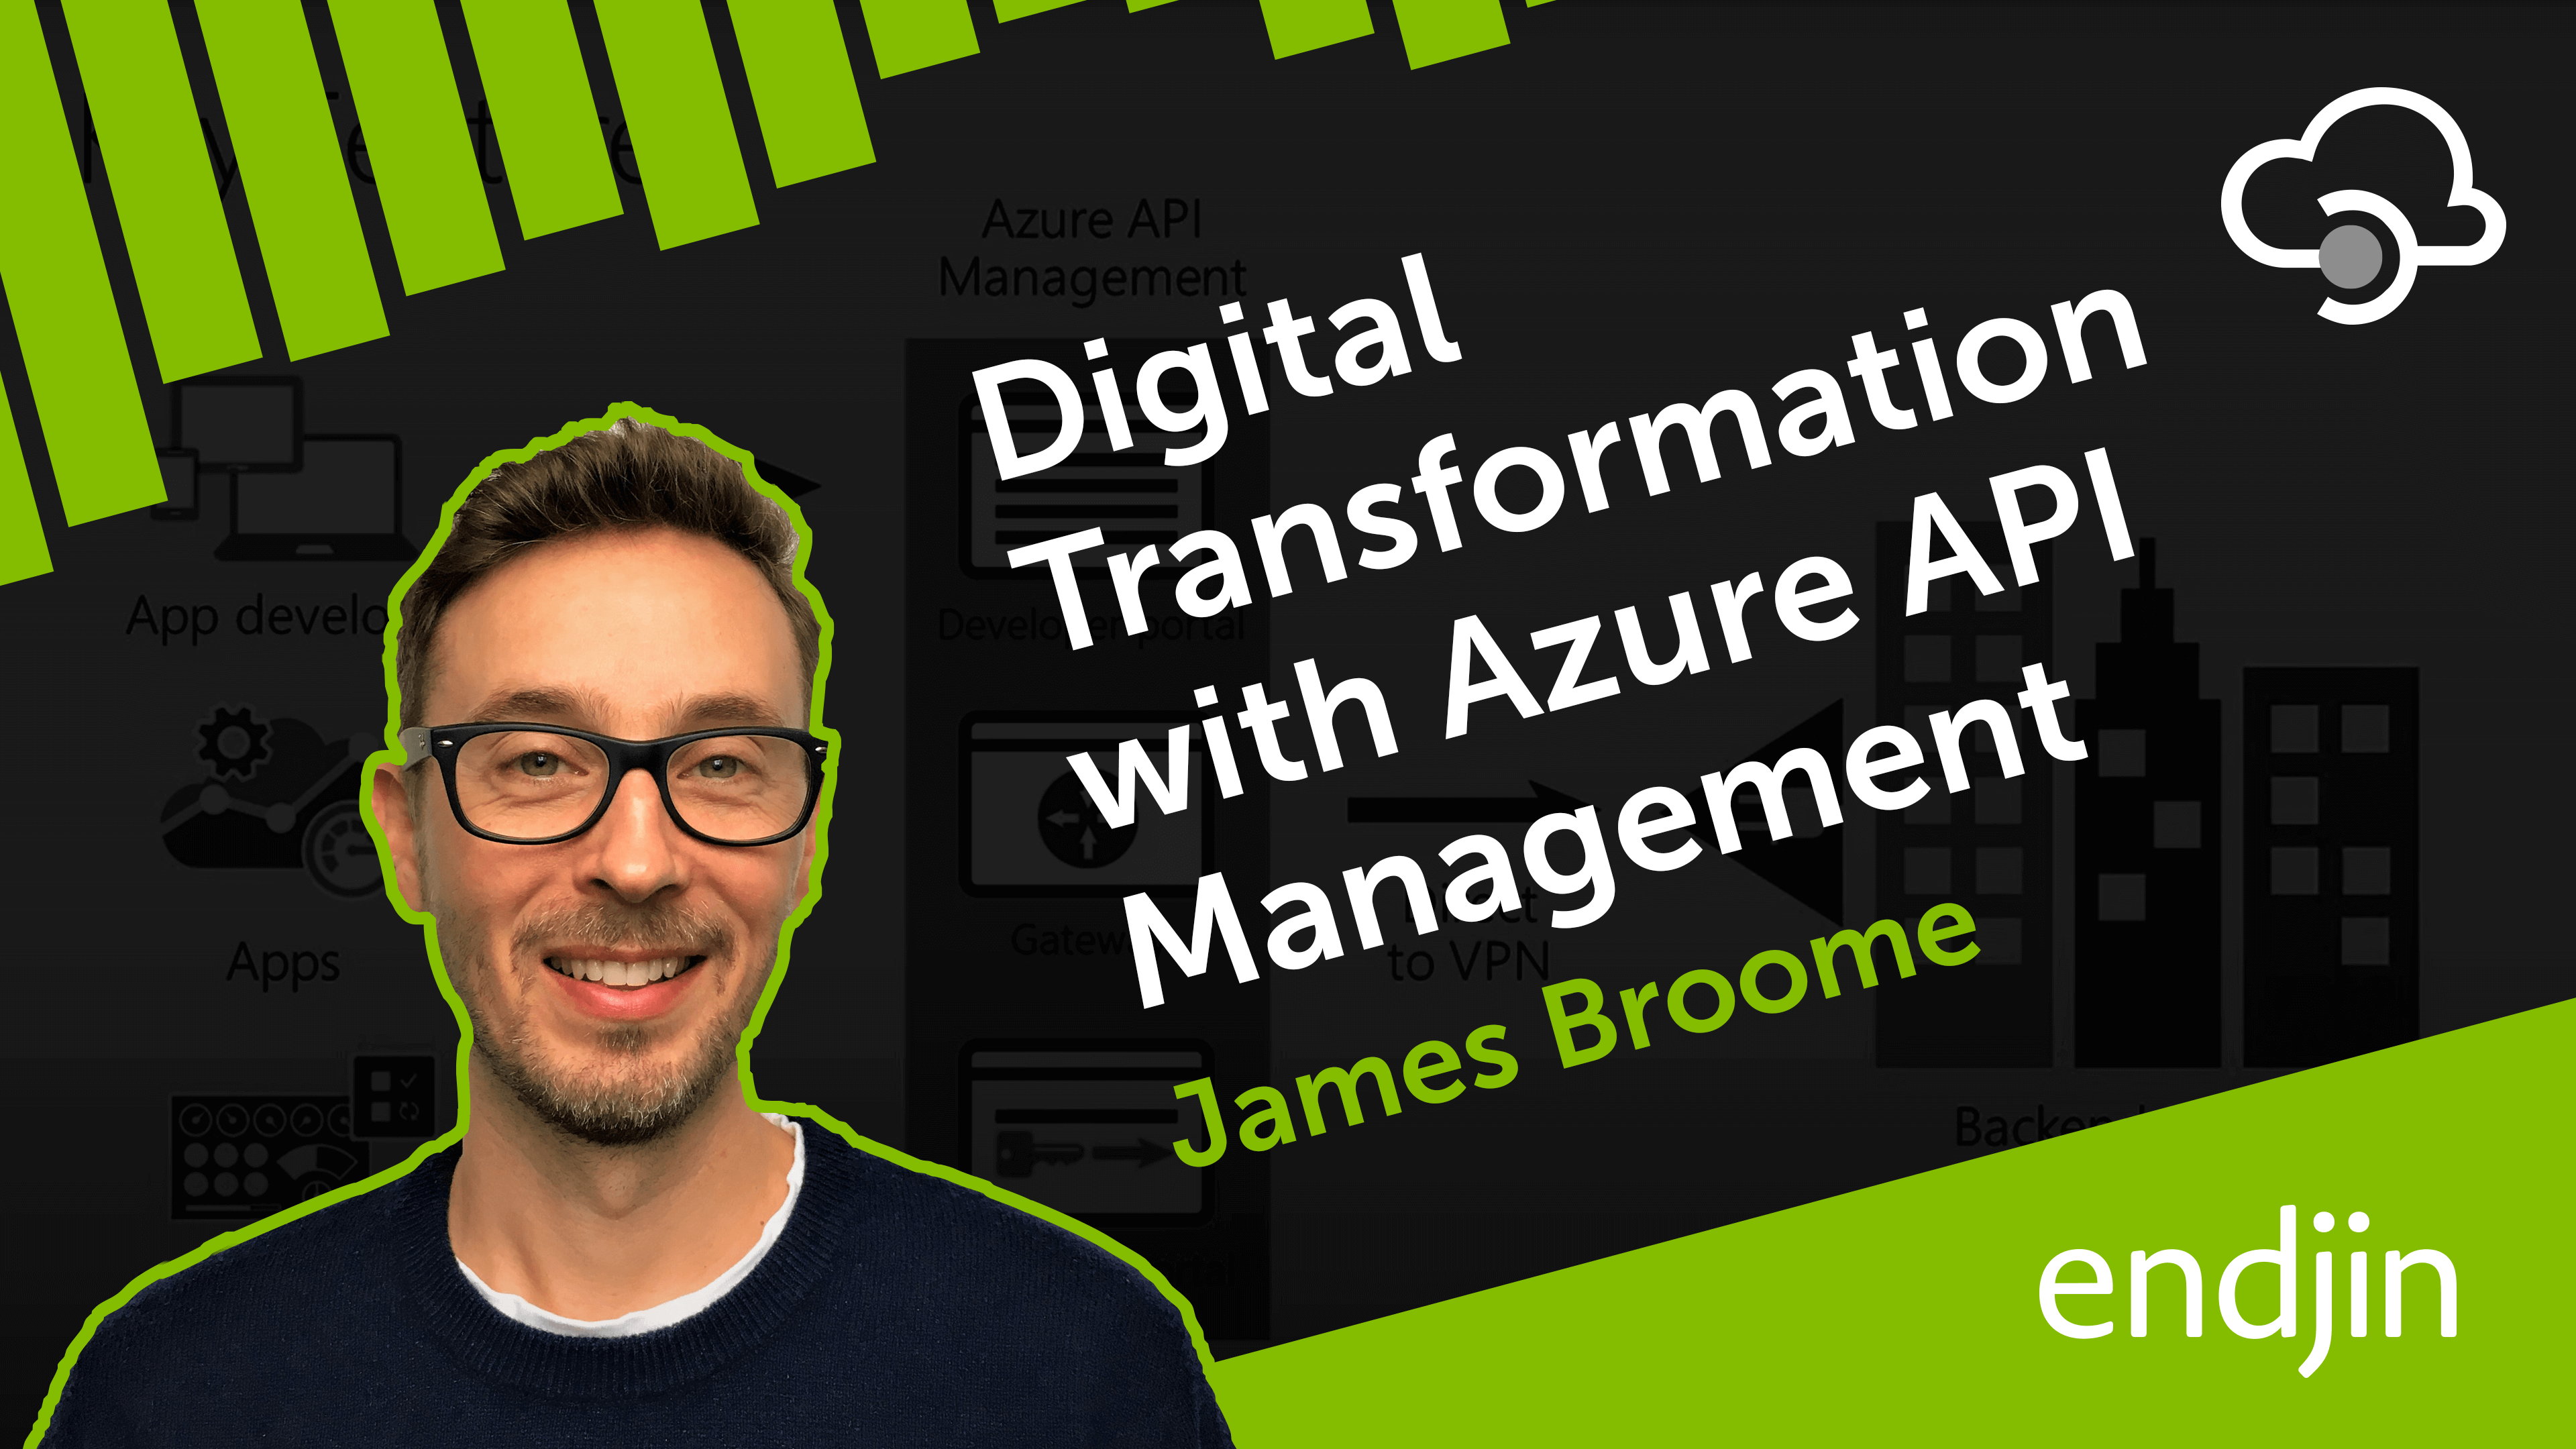 Unlocking Digital Transformation with Azure API Management